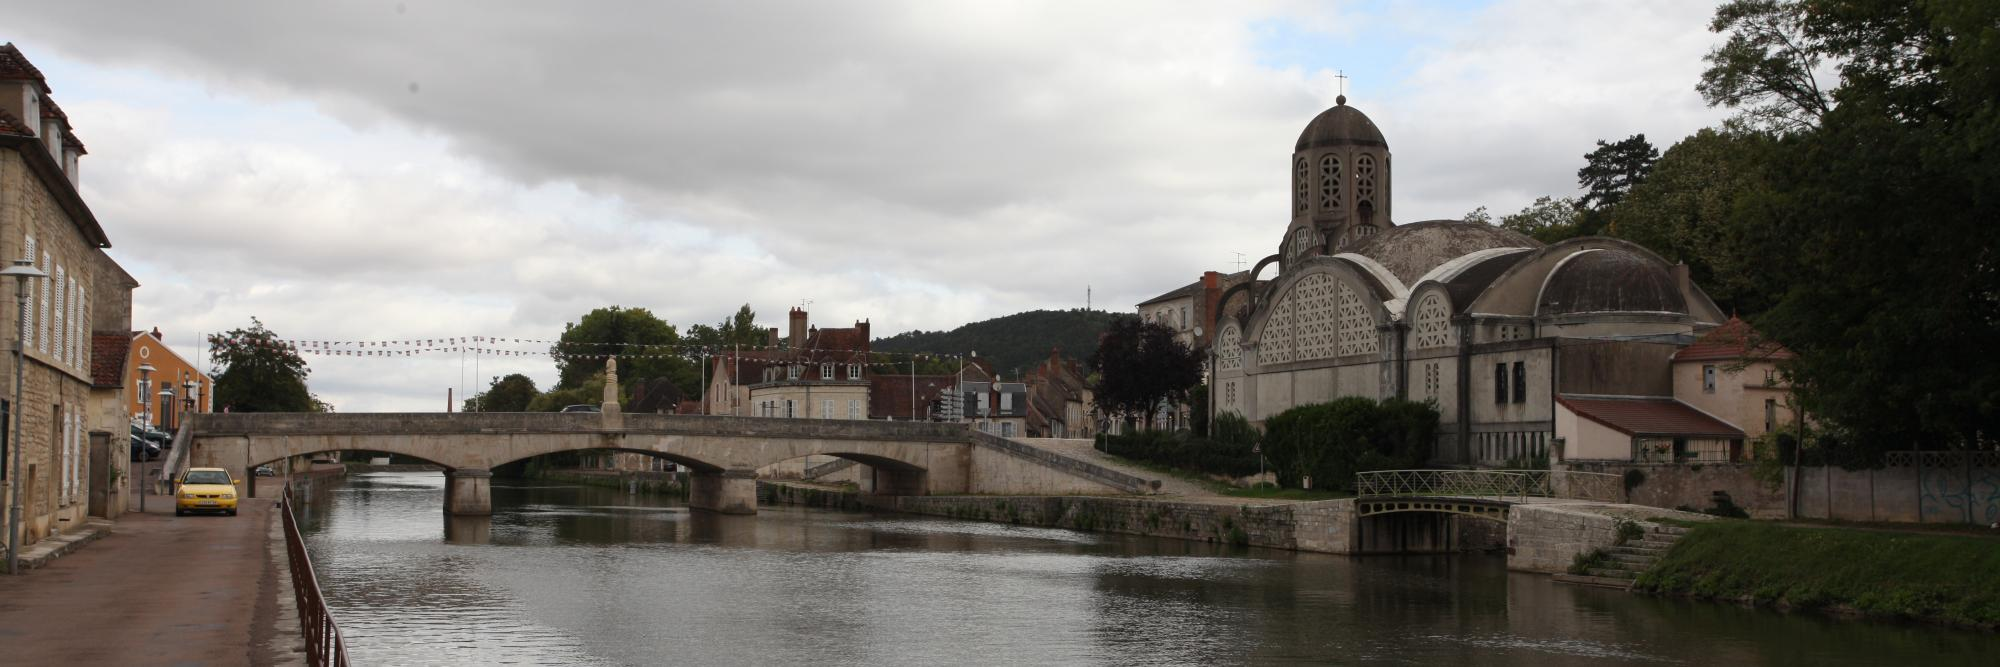 Clamecy